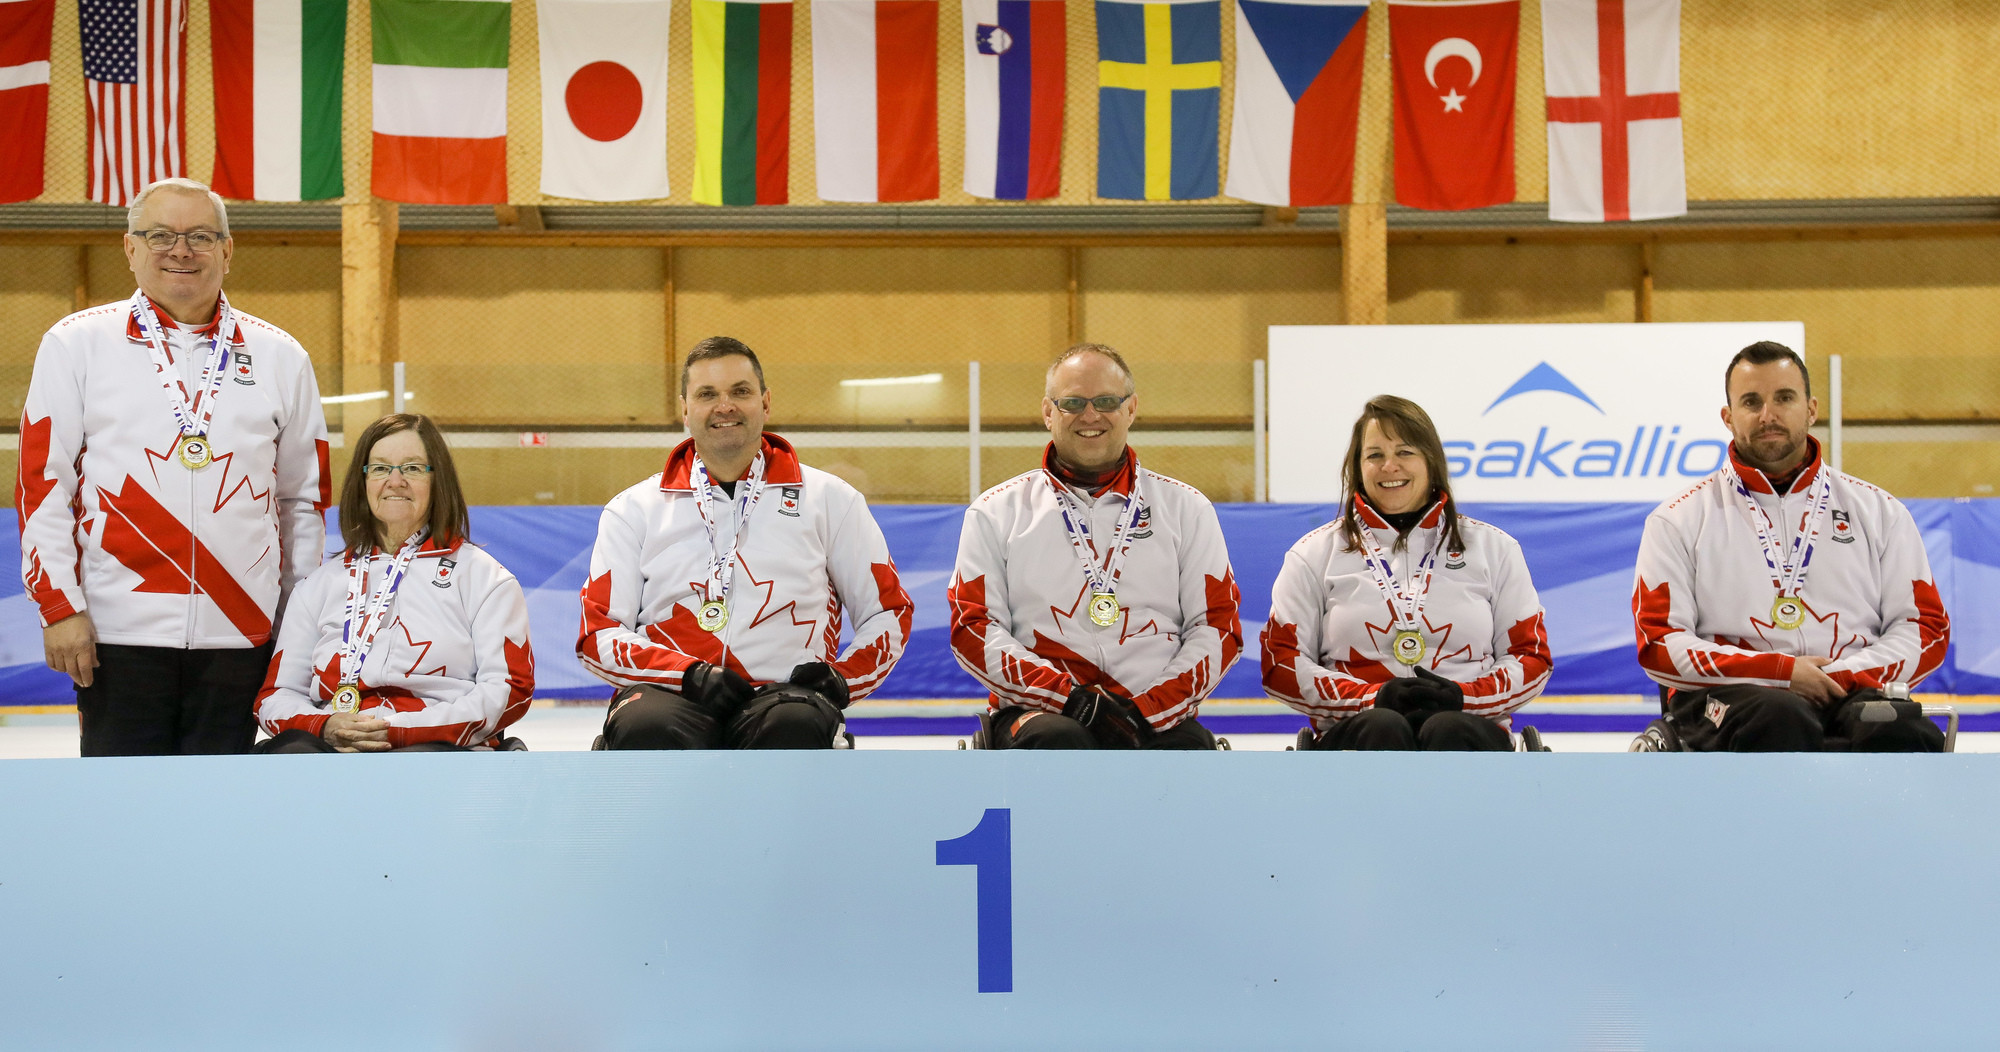 Canada triumph at World Wheelchair-B Curling Championship